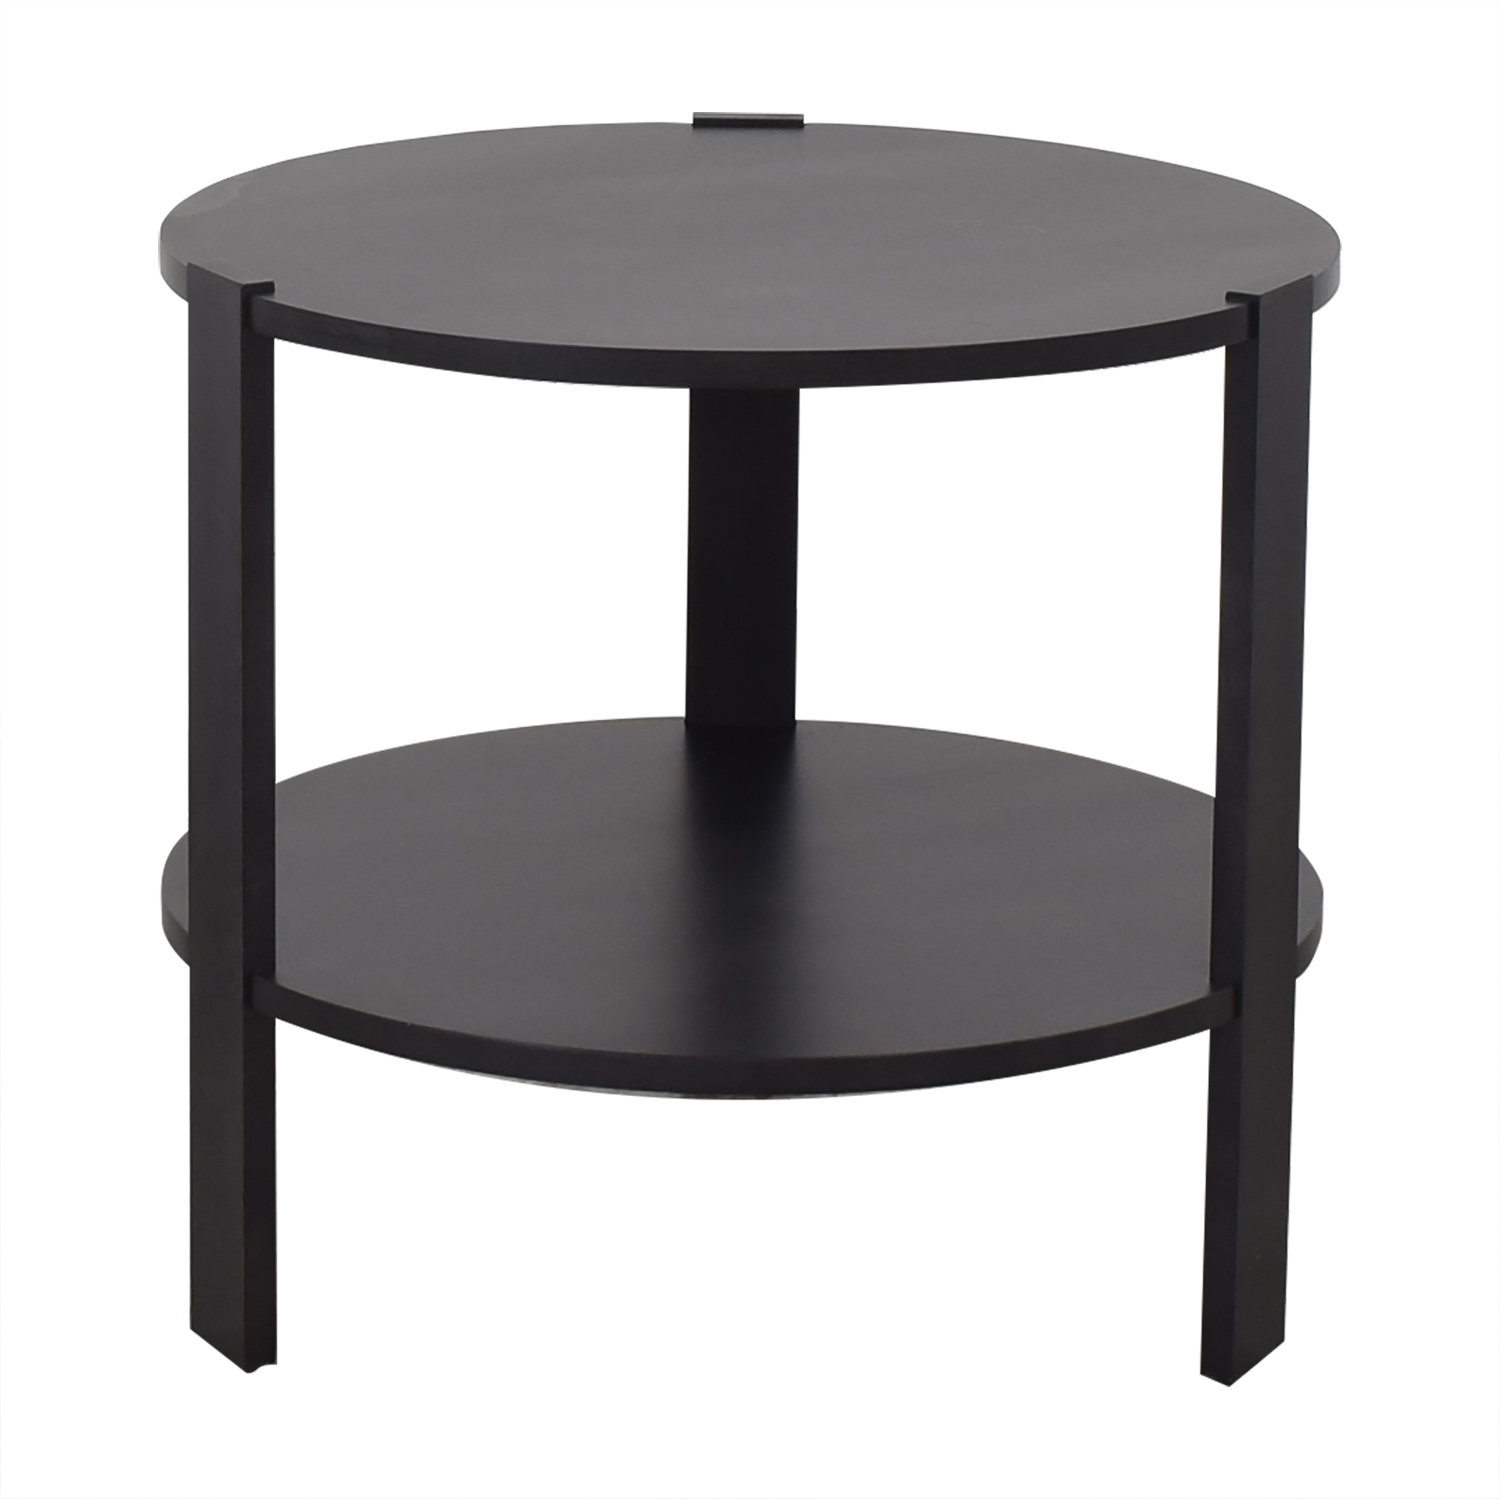 Room & Board Room & Board Greene End Table coupon